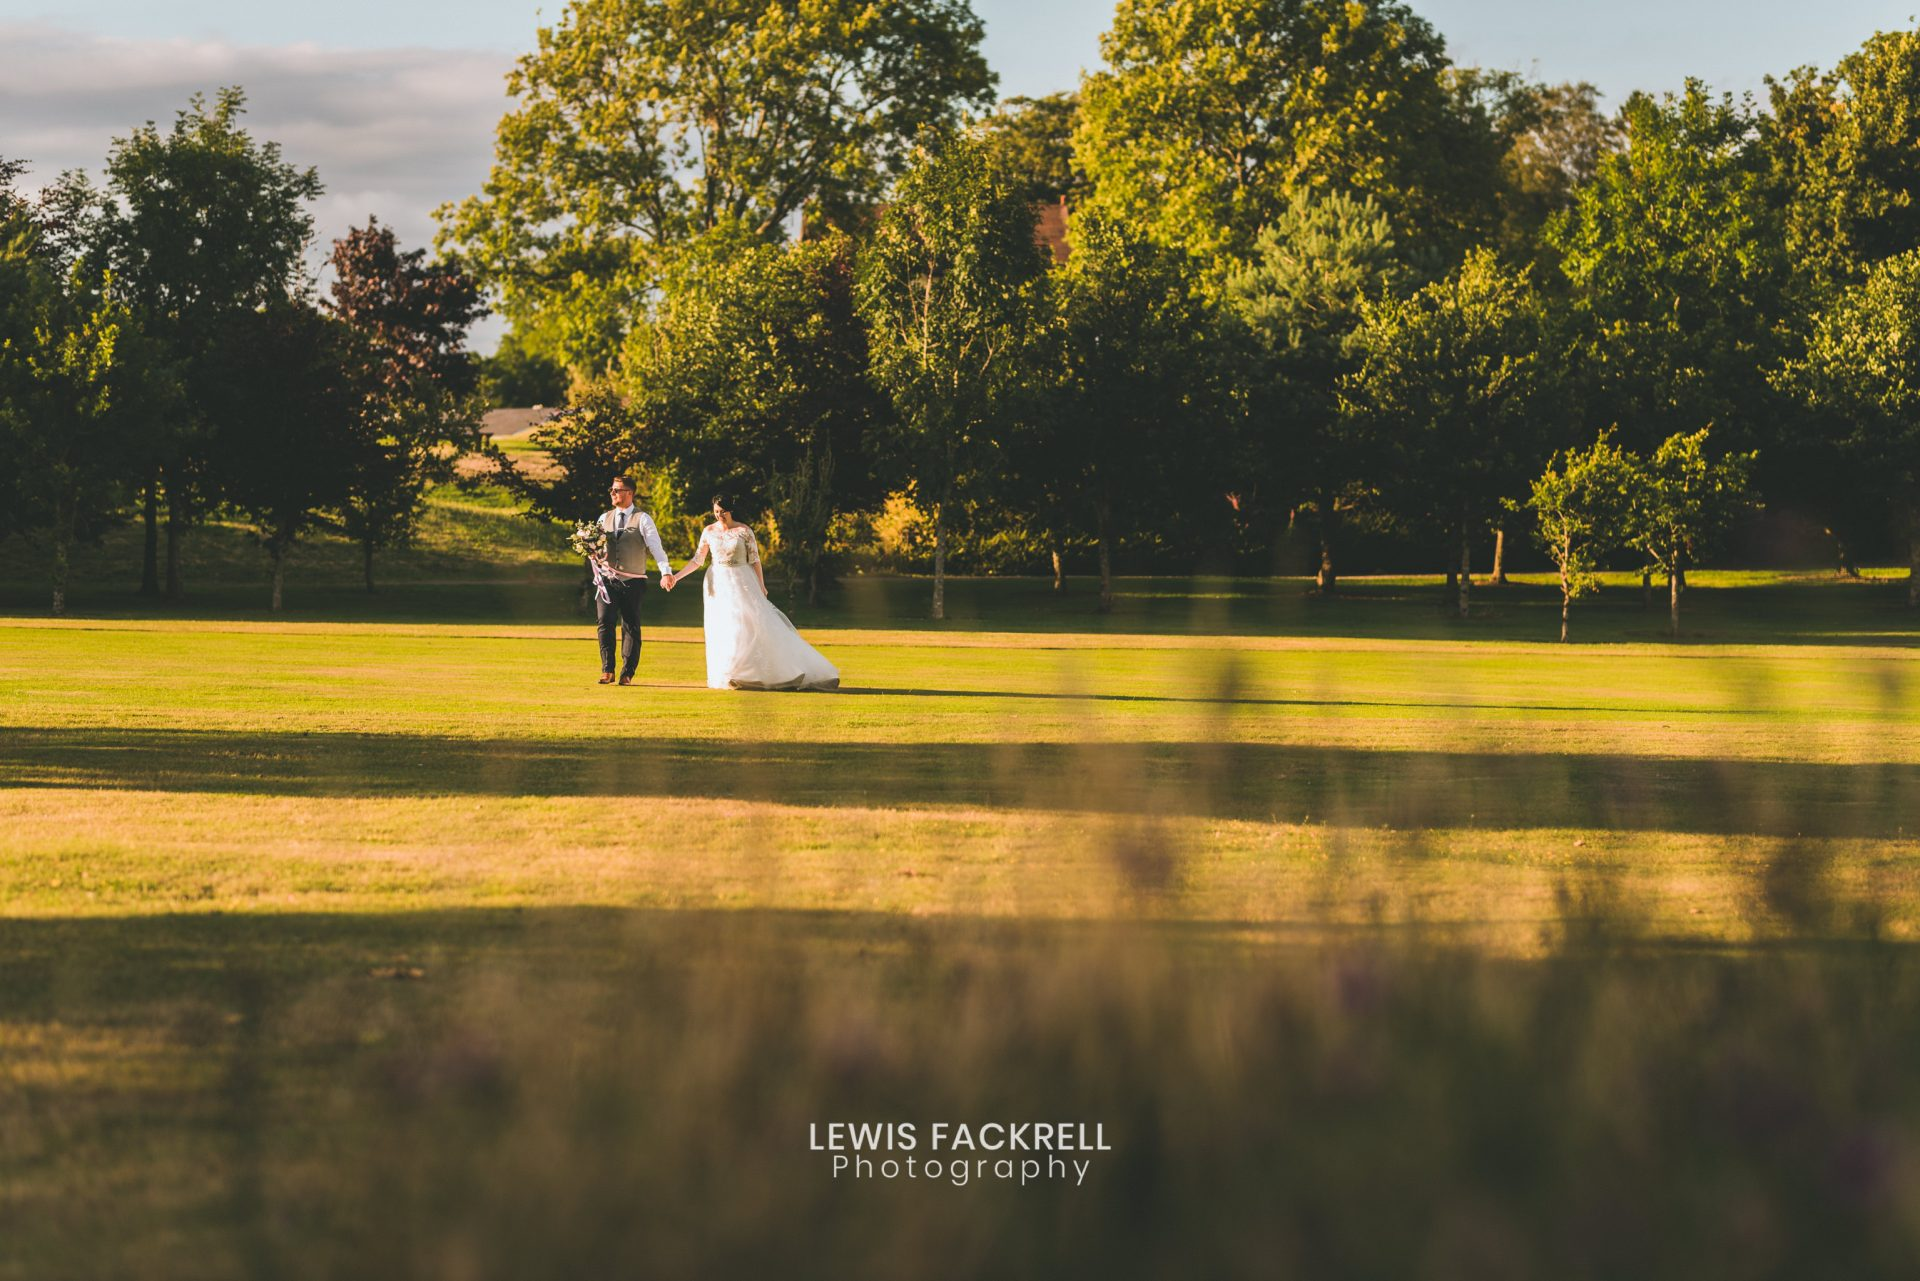 Cottrell park wedding of bride and groom as they walk on the lawn in the summer evening light